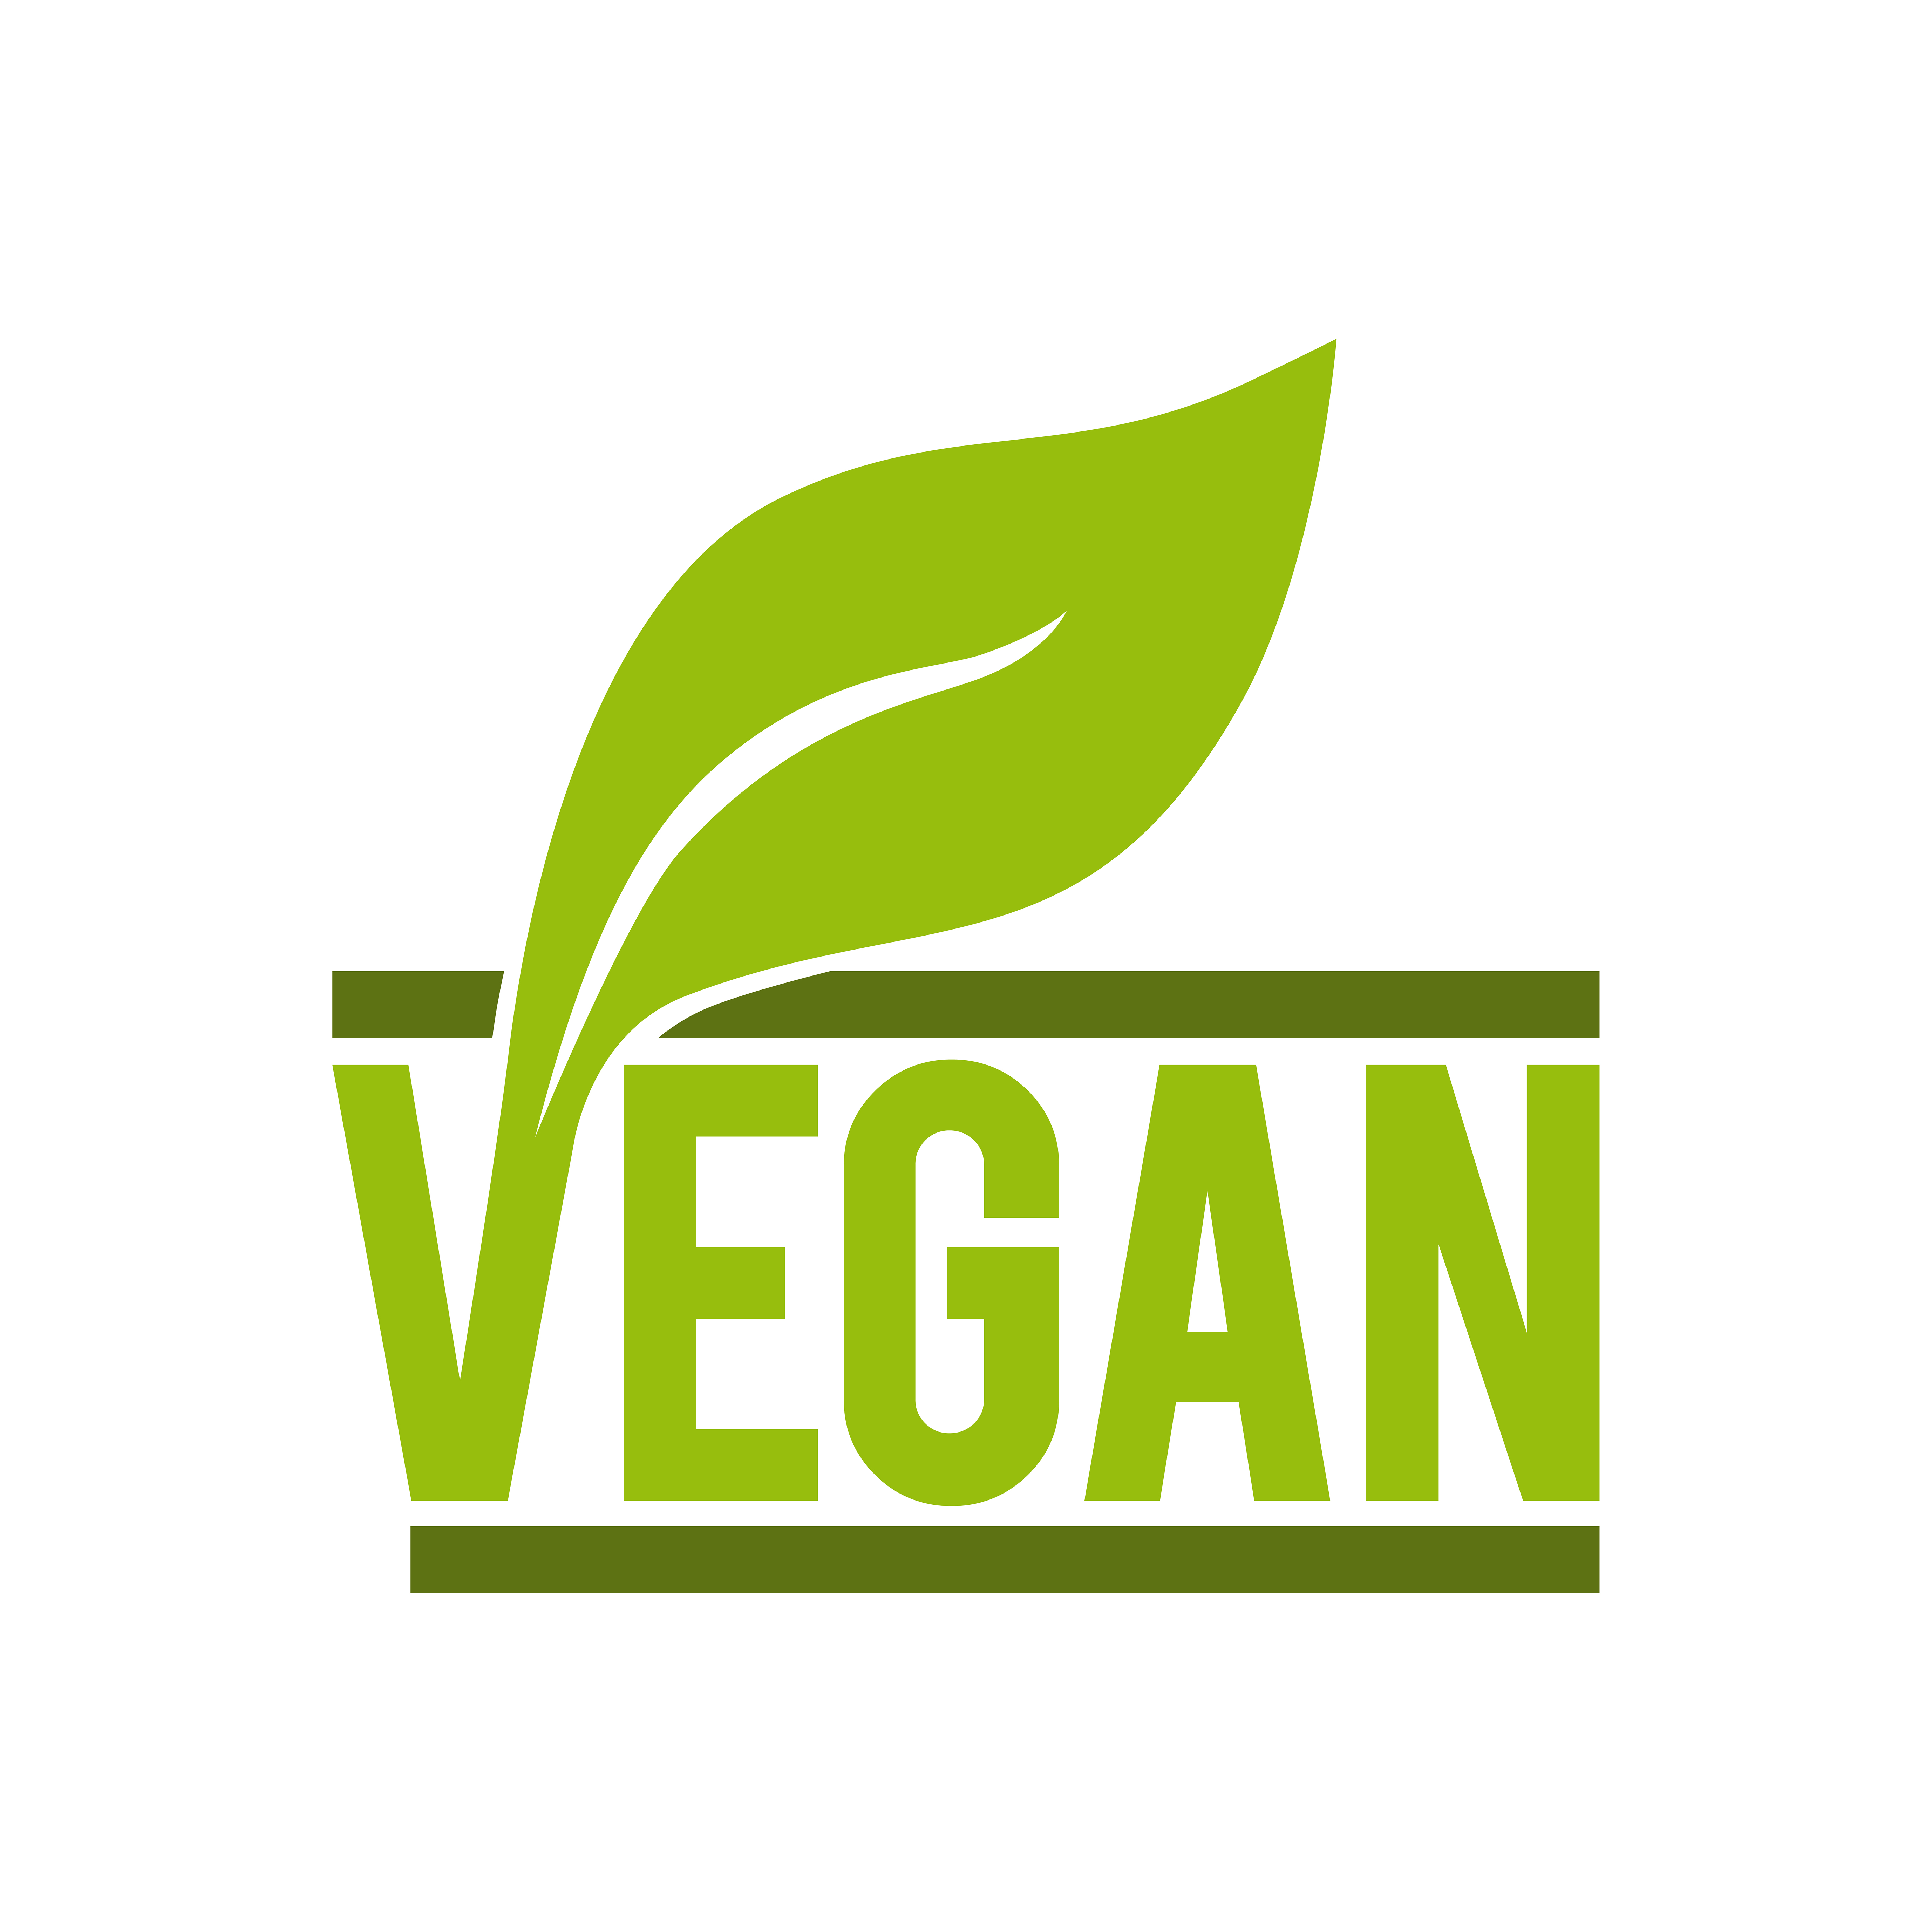 Vegan food icon  - Download Free Vector Art, Stock Graphics & Images